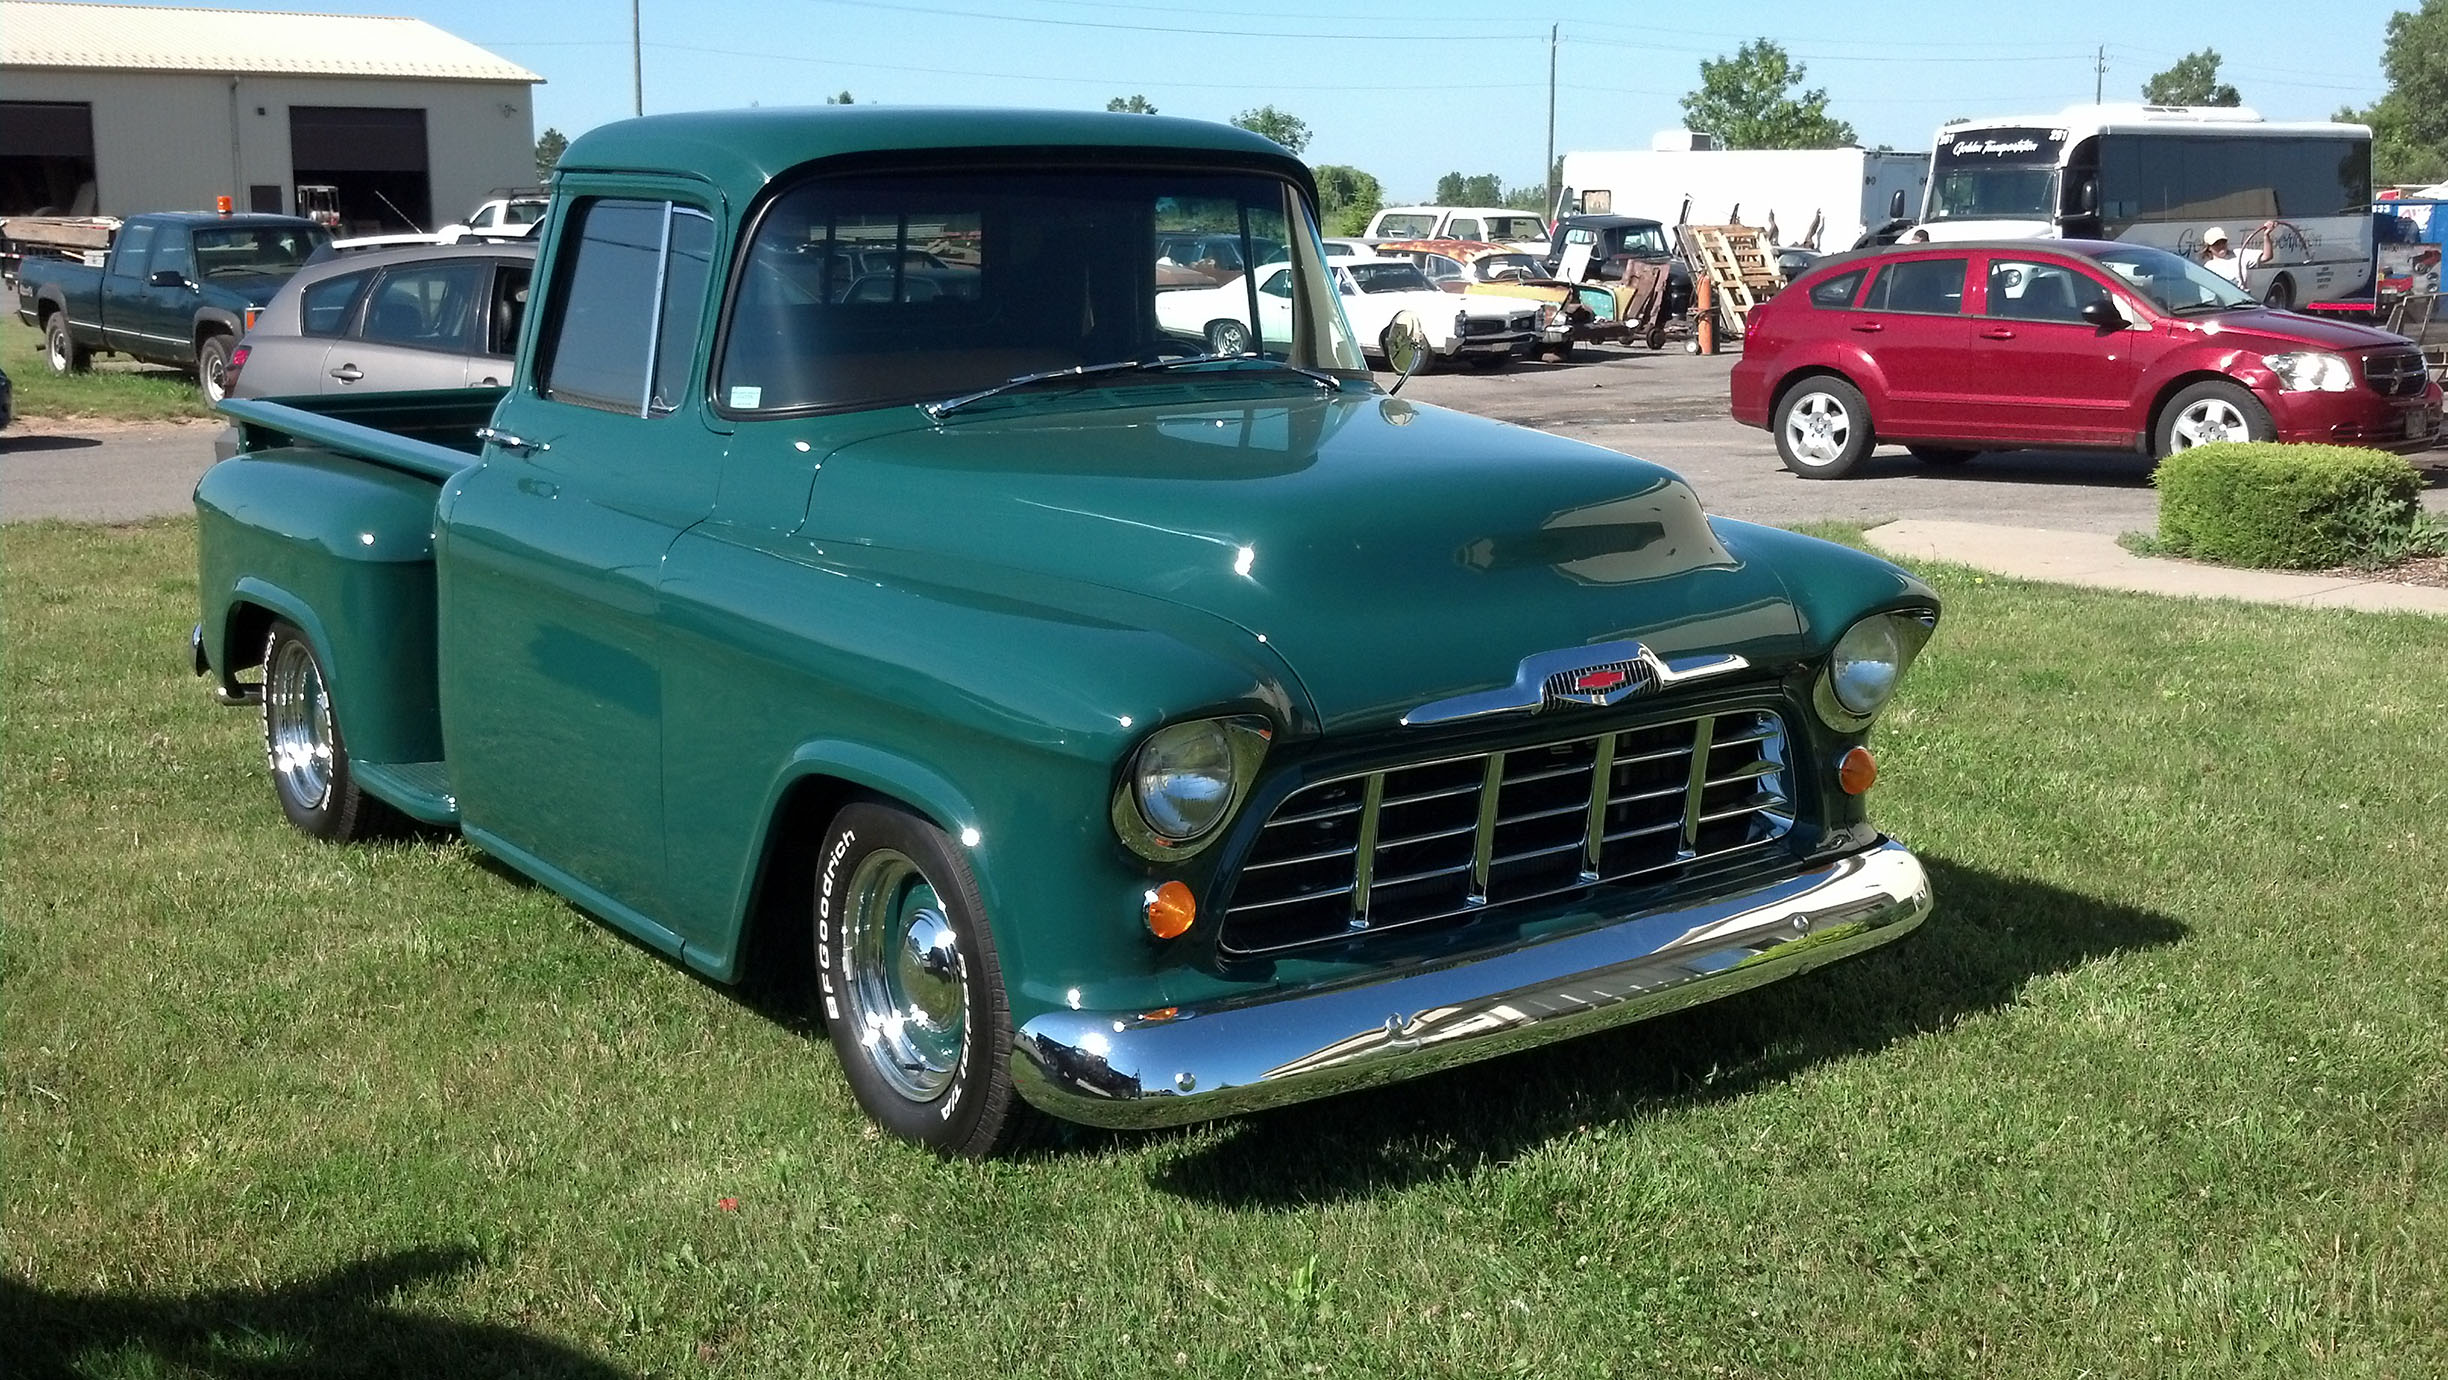 1956 Chevy Truck - S & S Auto Body of Clarence Inc.